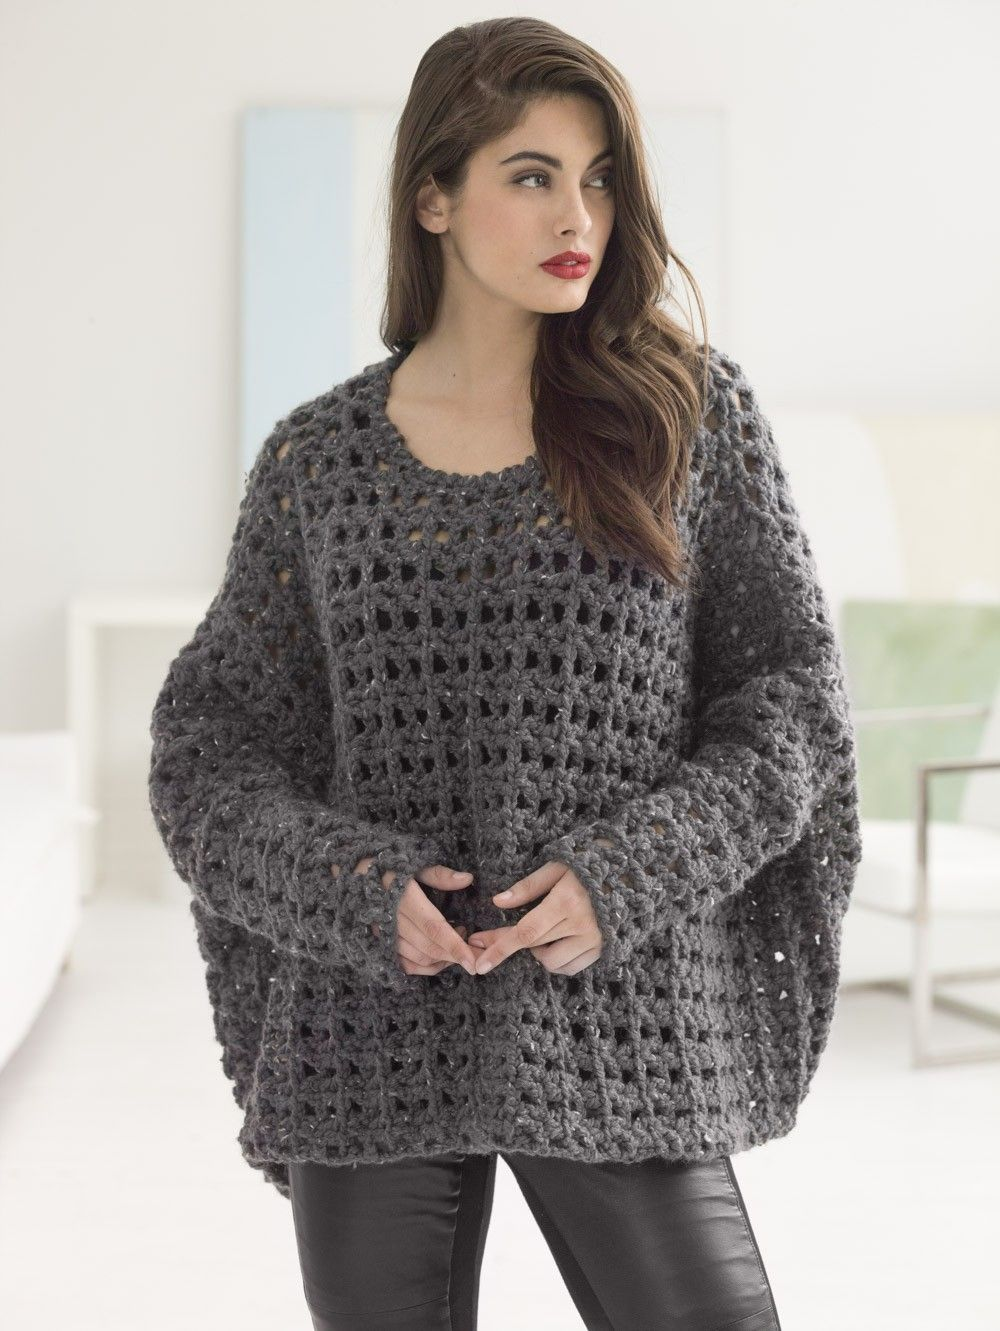 Popover Top (Crochet) - Patterns - Lion Brand Yarn | CɽocɧҼʈ idҼaʂ ...